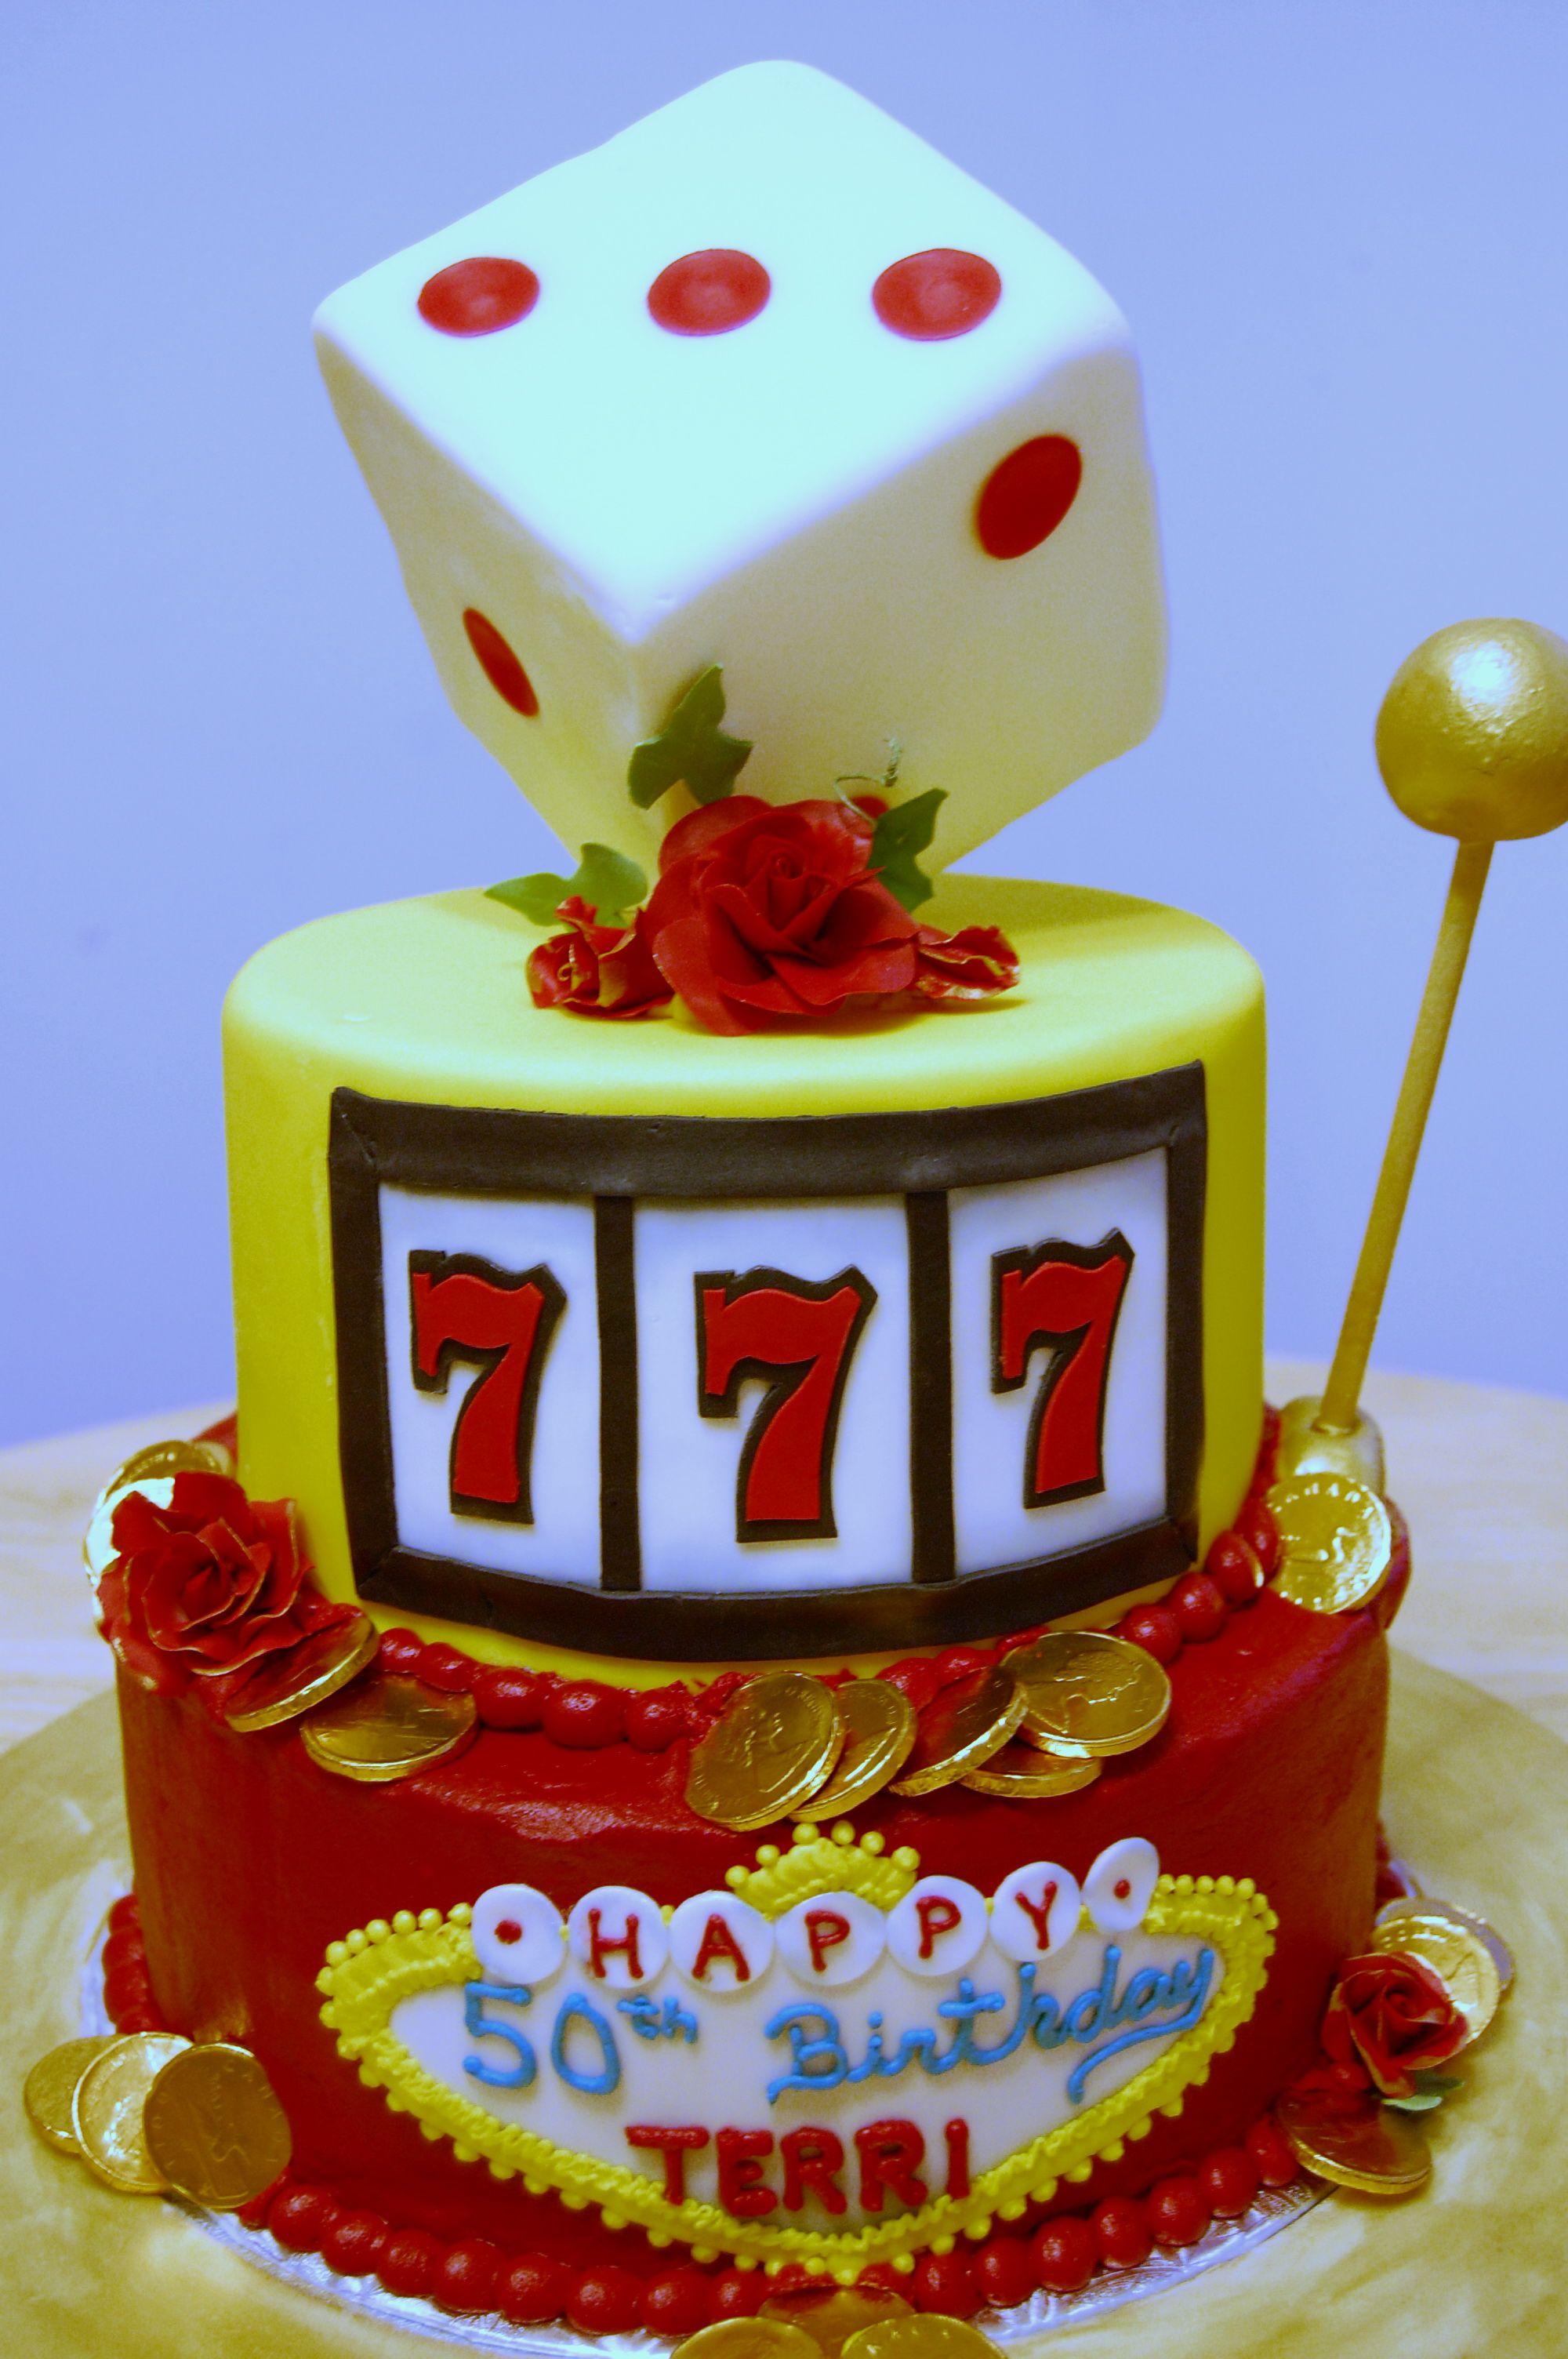 Casino Cake  Made for a friend who wanted to suprise someone.  October 8, 2010